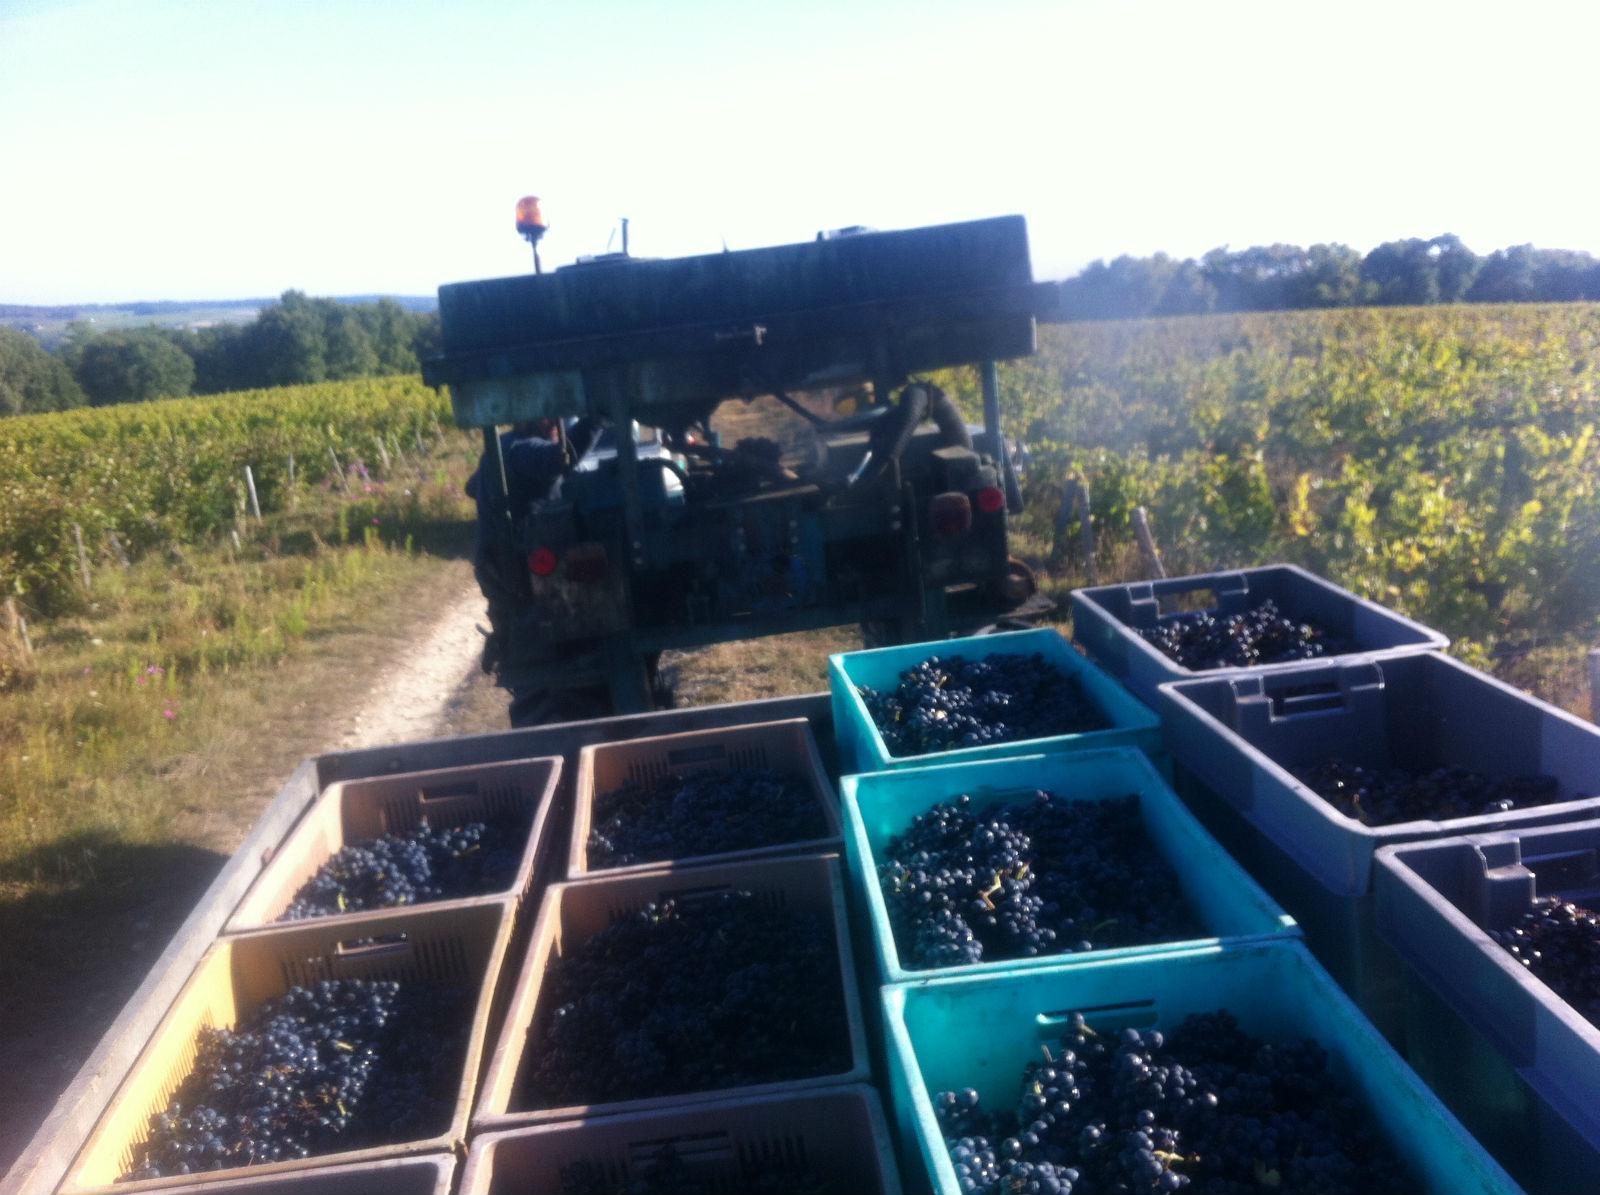 HiP Paris blog. Experiencing the wine harvest in France. The spoils of early fall in French wine country.